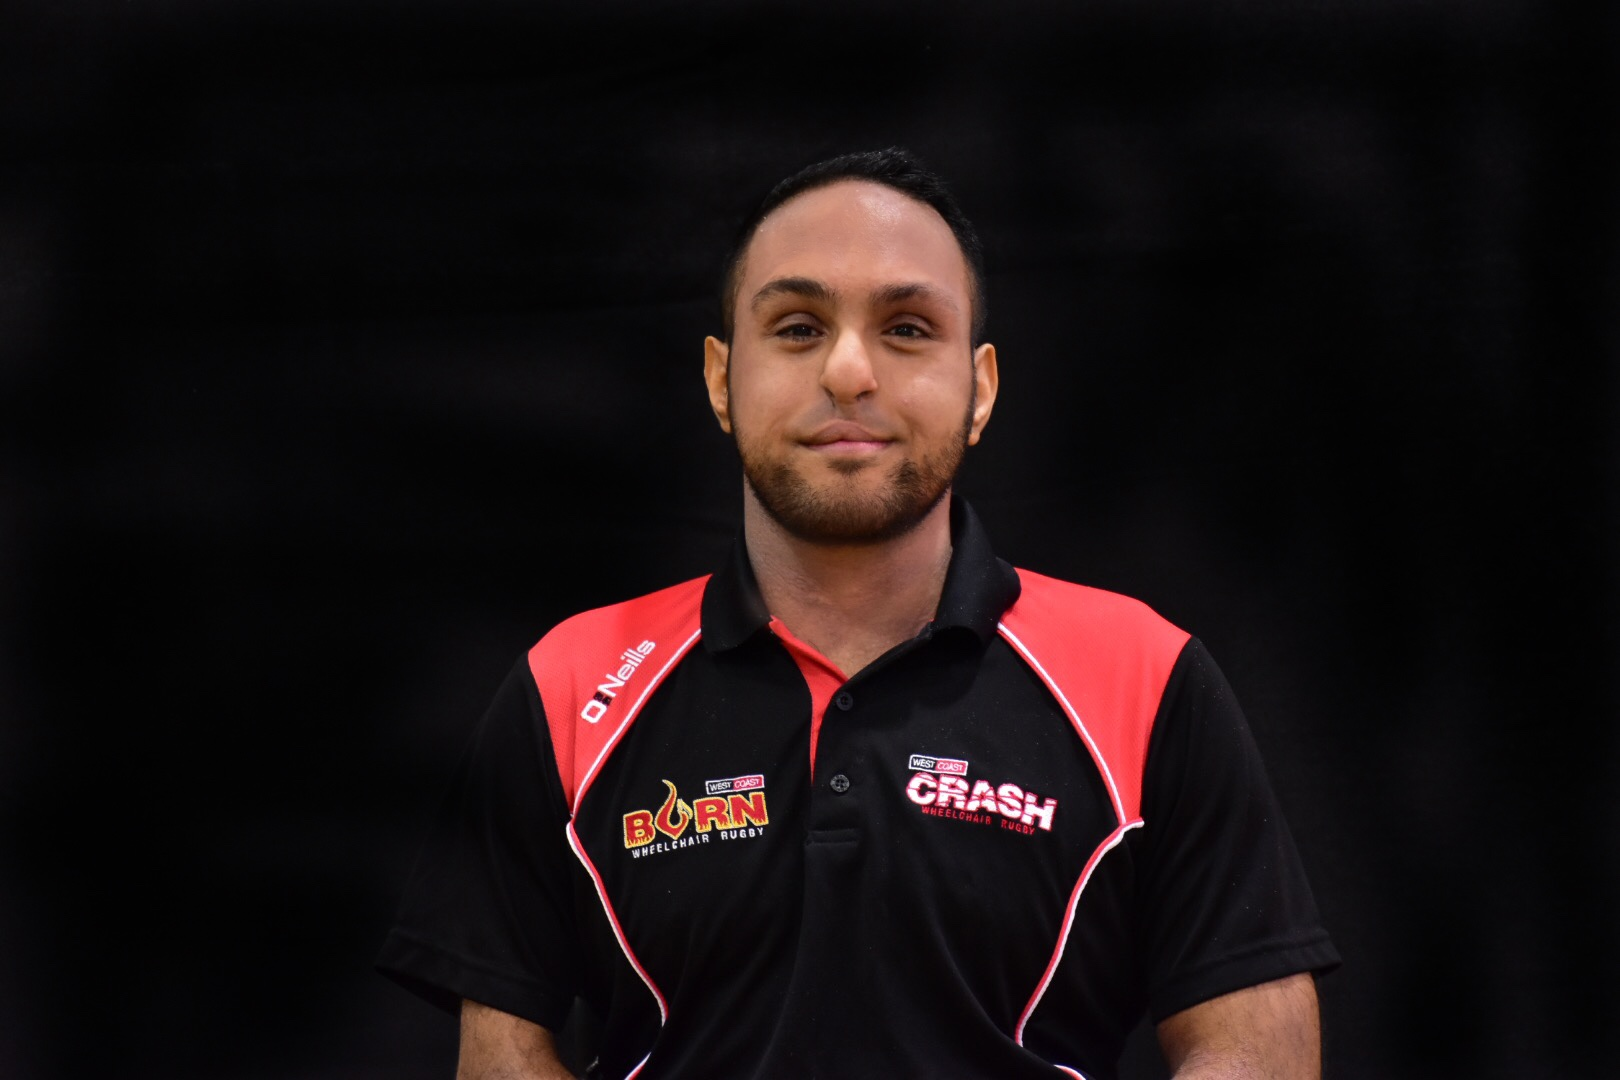 Ayaz Bhuta - Soon after joining the club in 2010 Ayaz was selected to represent GB at a tournament in Australia, after this tournament there were doubts about Ayaz's size and weight on the international scene. Ayaz carried on training and he helped Crash win their first ever league title in 2012 and made it back into the GB Elite team.Since returning to the GB team Ayaz has become a triple European Champion and represented GB at the Rio 2016 Paralympics.Away from rugby, Ayaz delivers inspirational speeches at schools and community events.